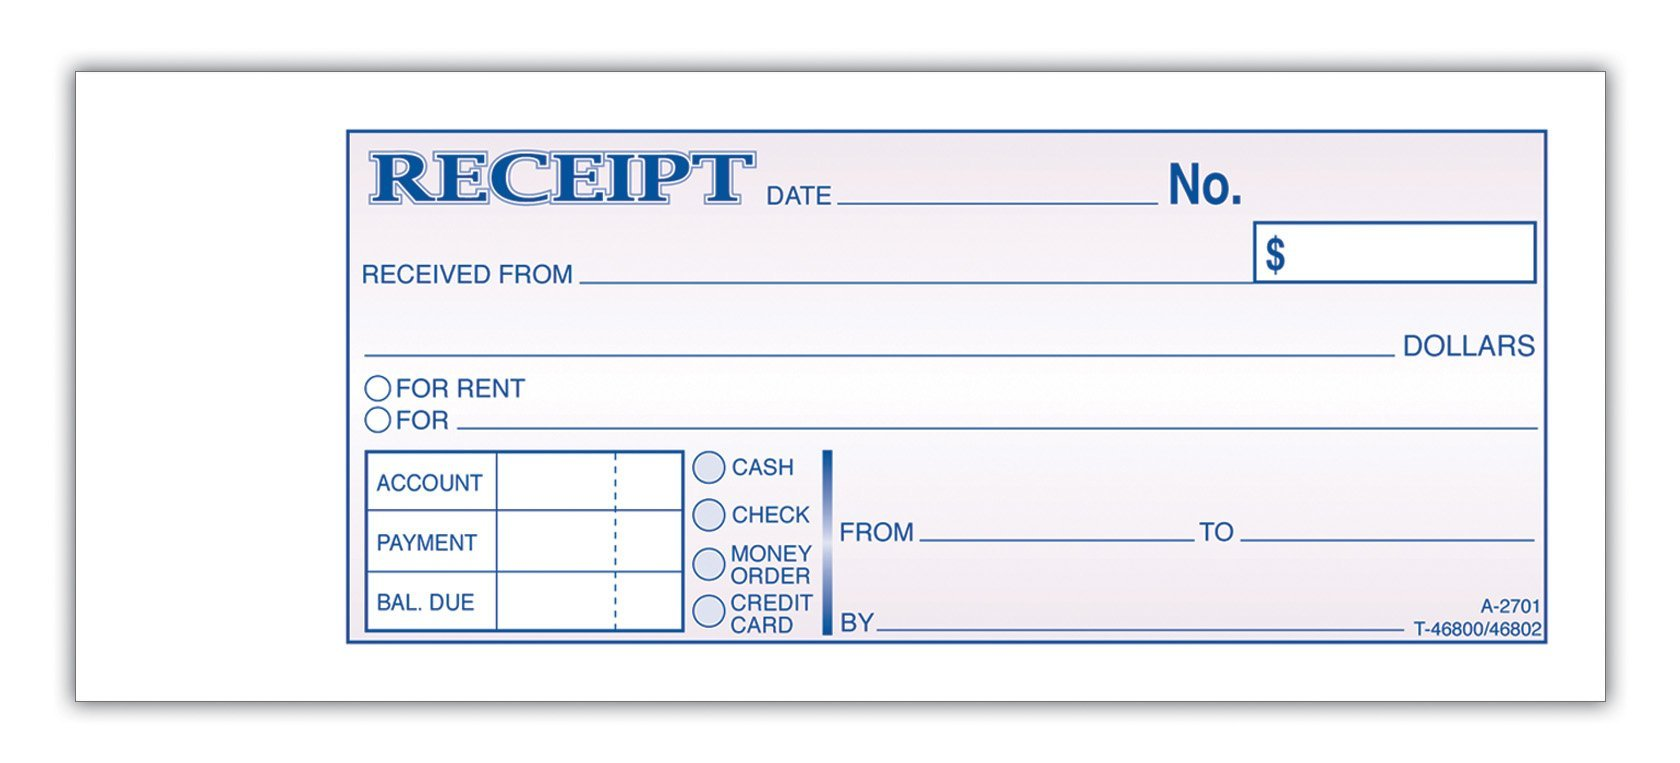 Receipts For Rent – Rent Reciepts